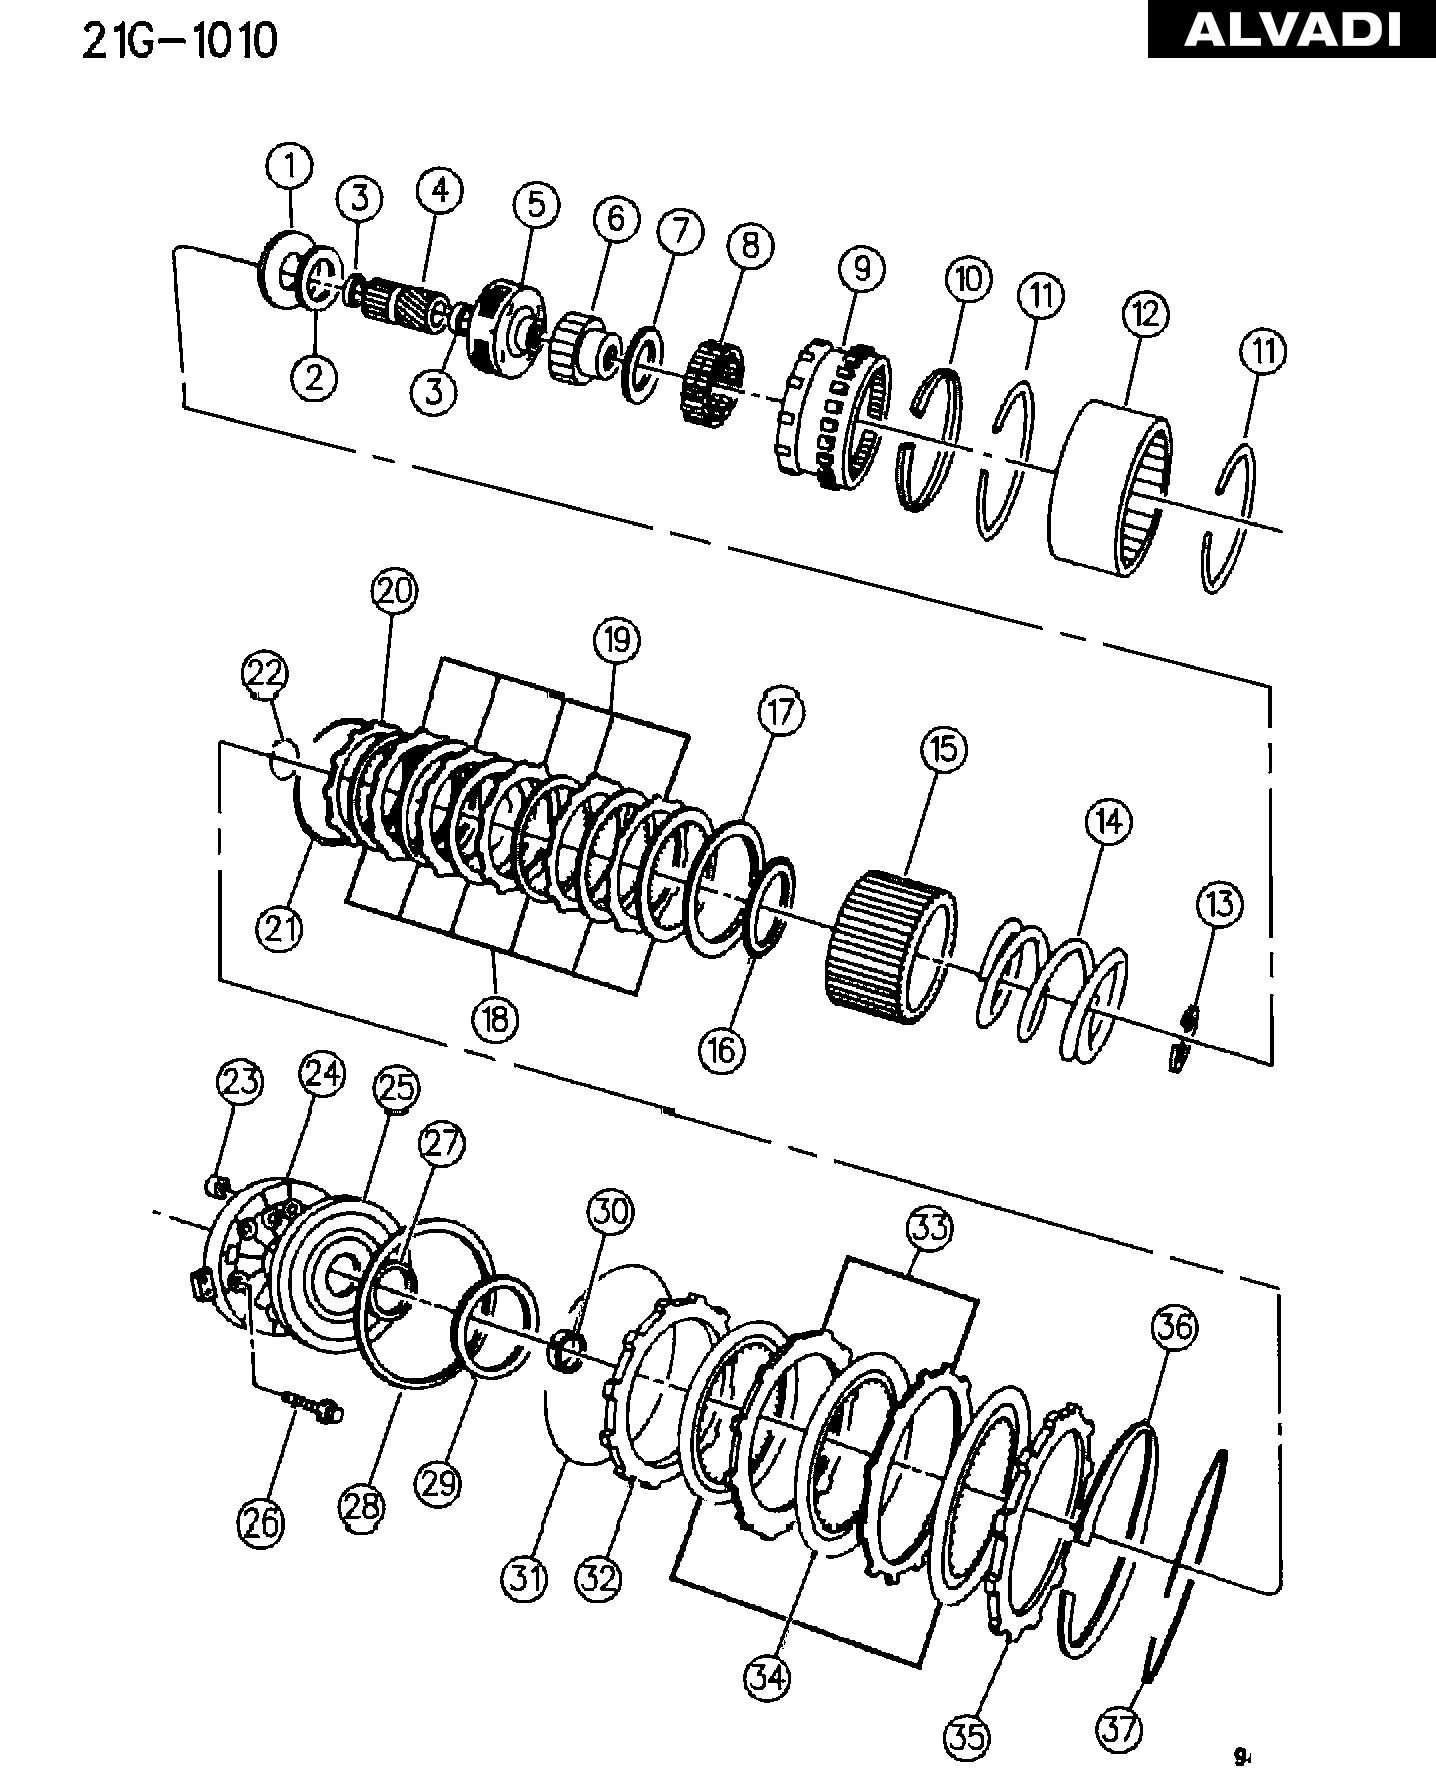 Manual Transmission Clutch Diagram Ram Clutch Overdrive with Gear Train Automatic Transmission 4 Of Manual Transmission Clutch Diagram